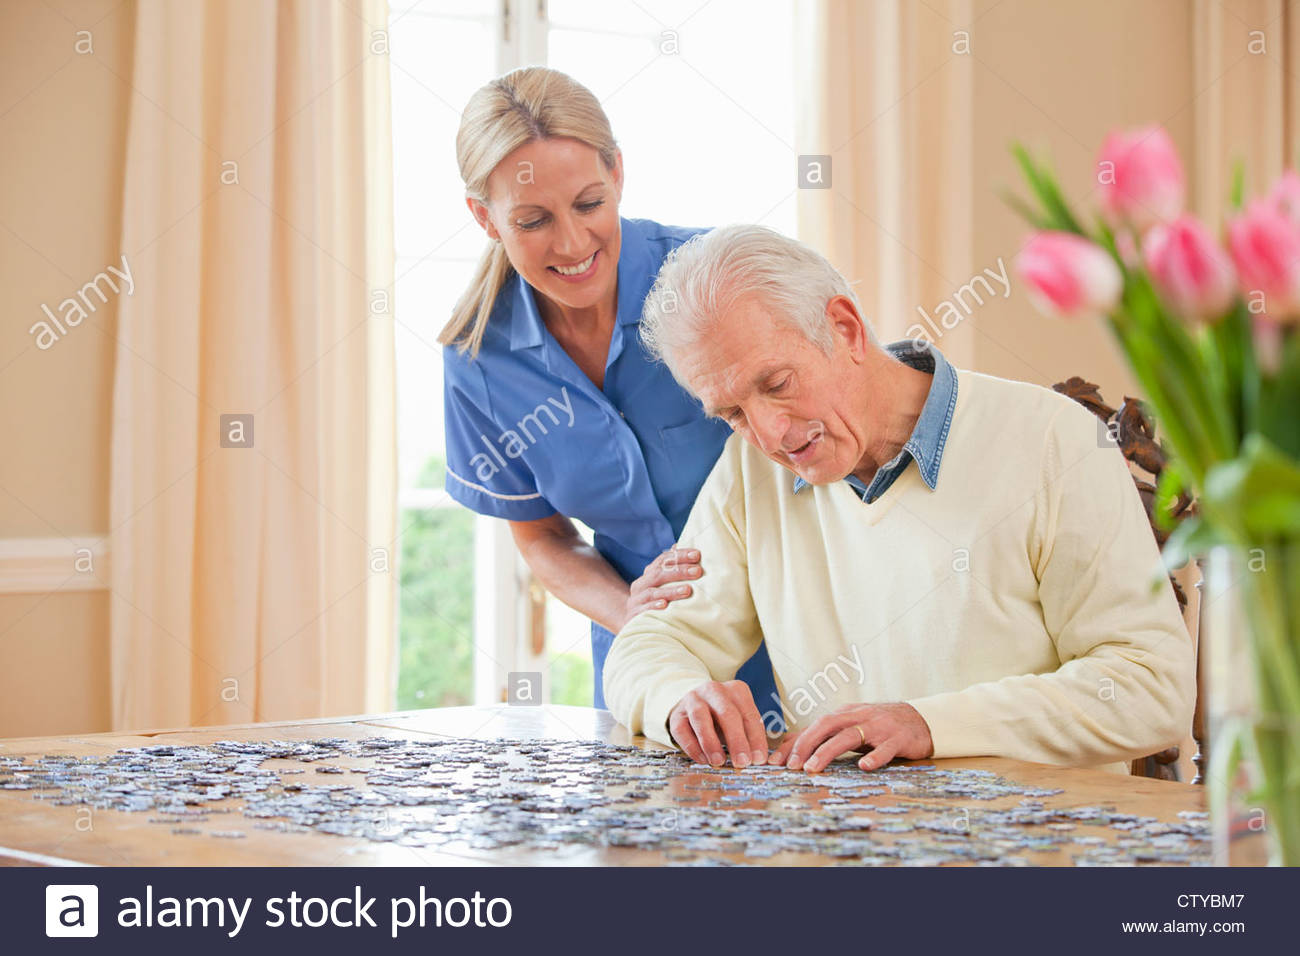 Smiling home caregiver watching senior man assemble jigsaw puzzle on table - Stock Image